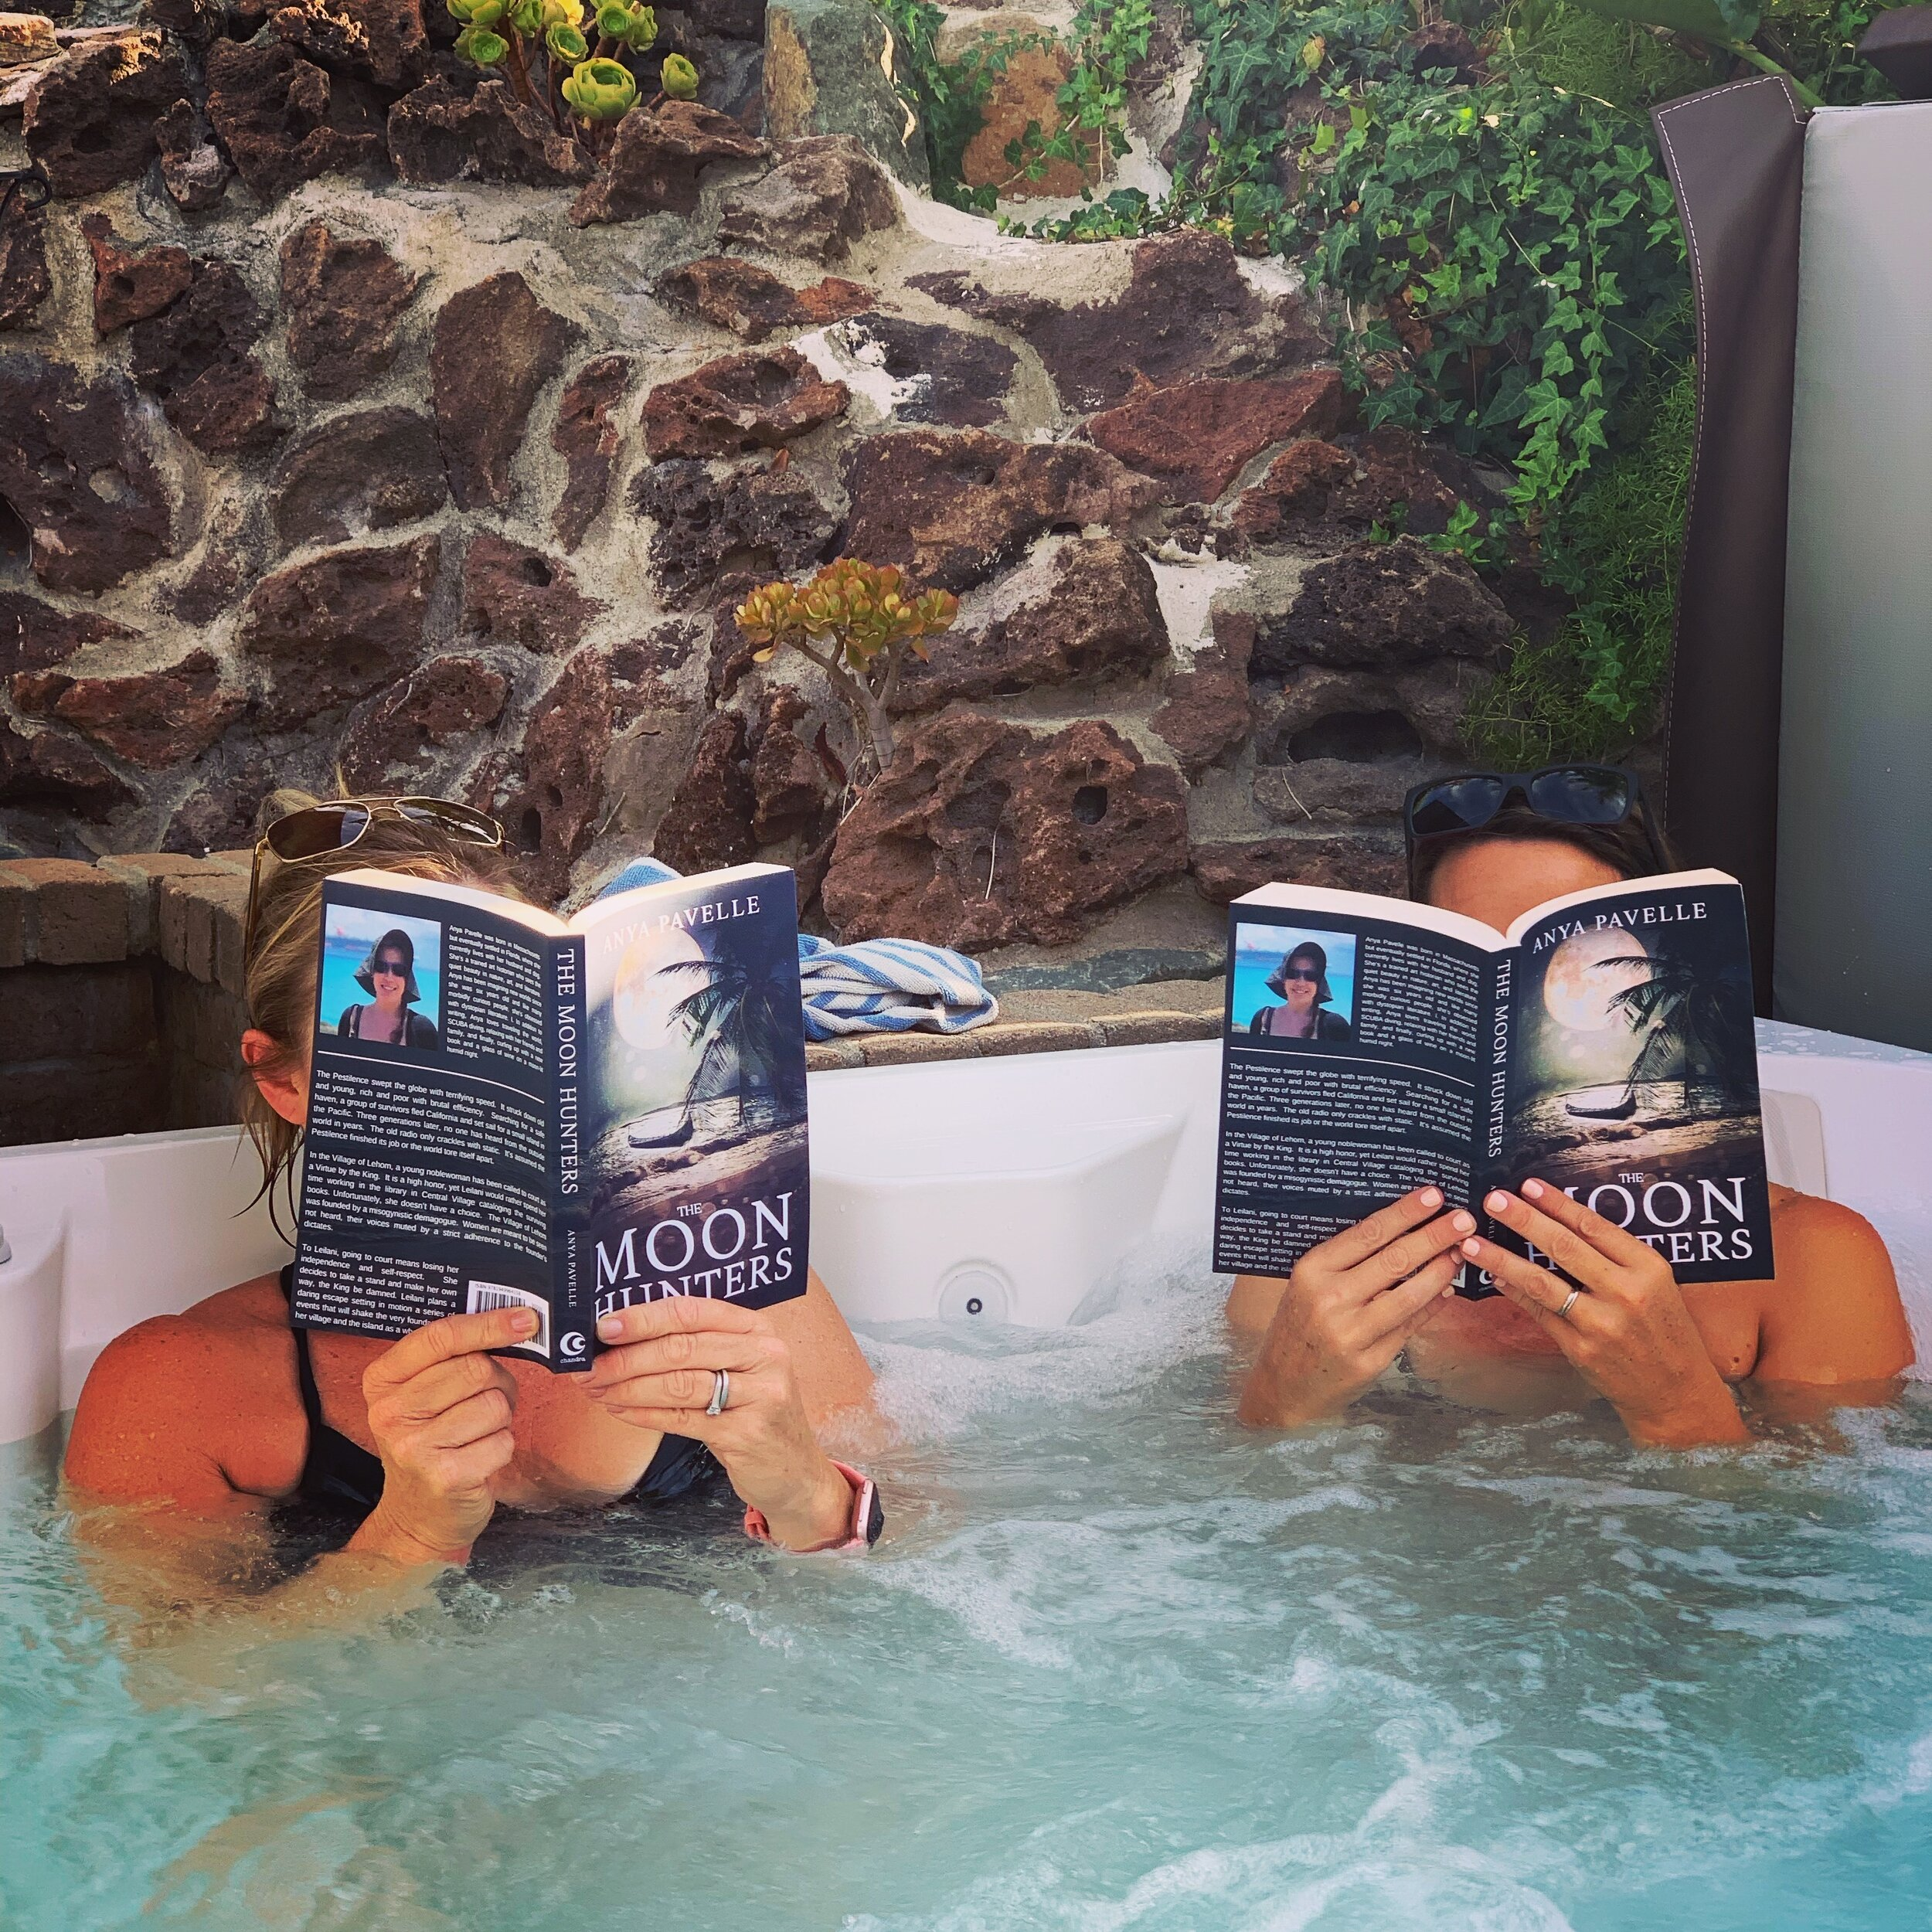 Sci-fi is always better in a hot tub.